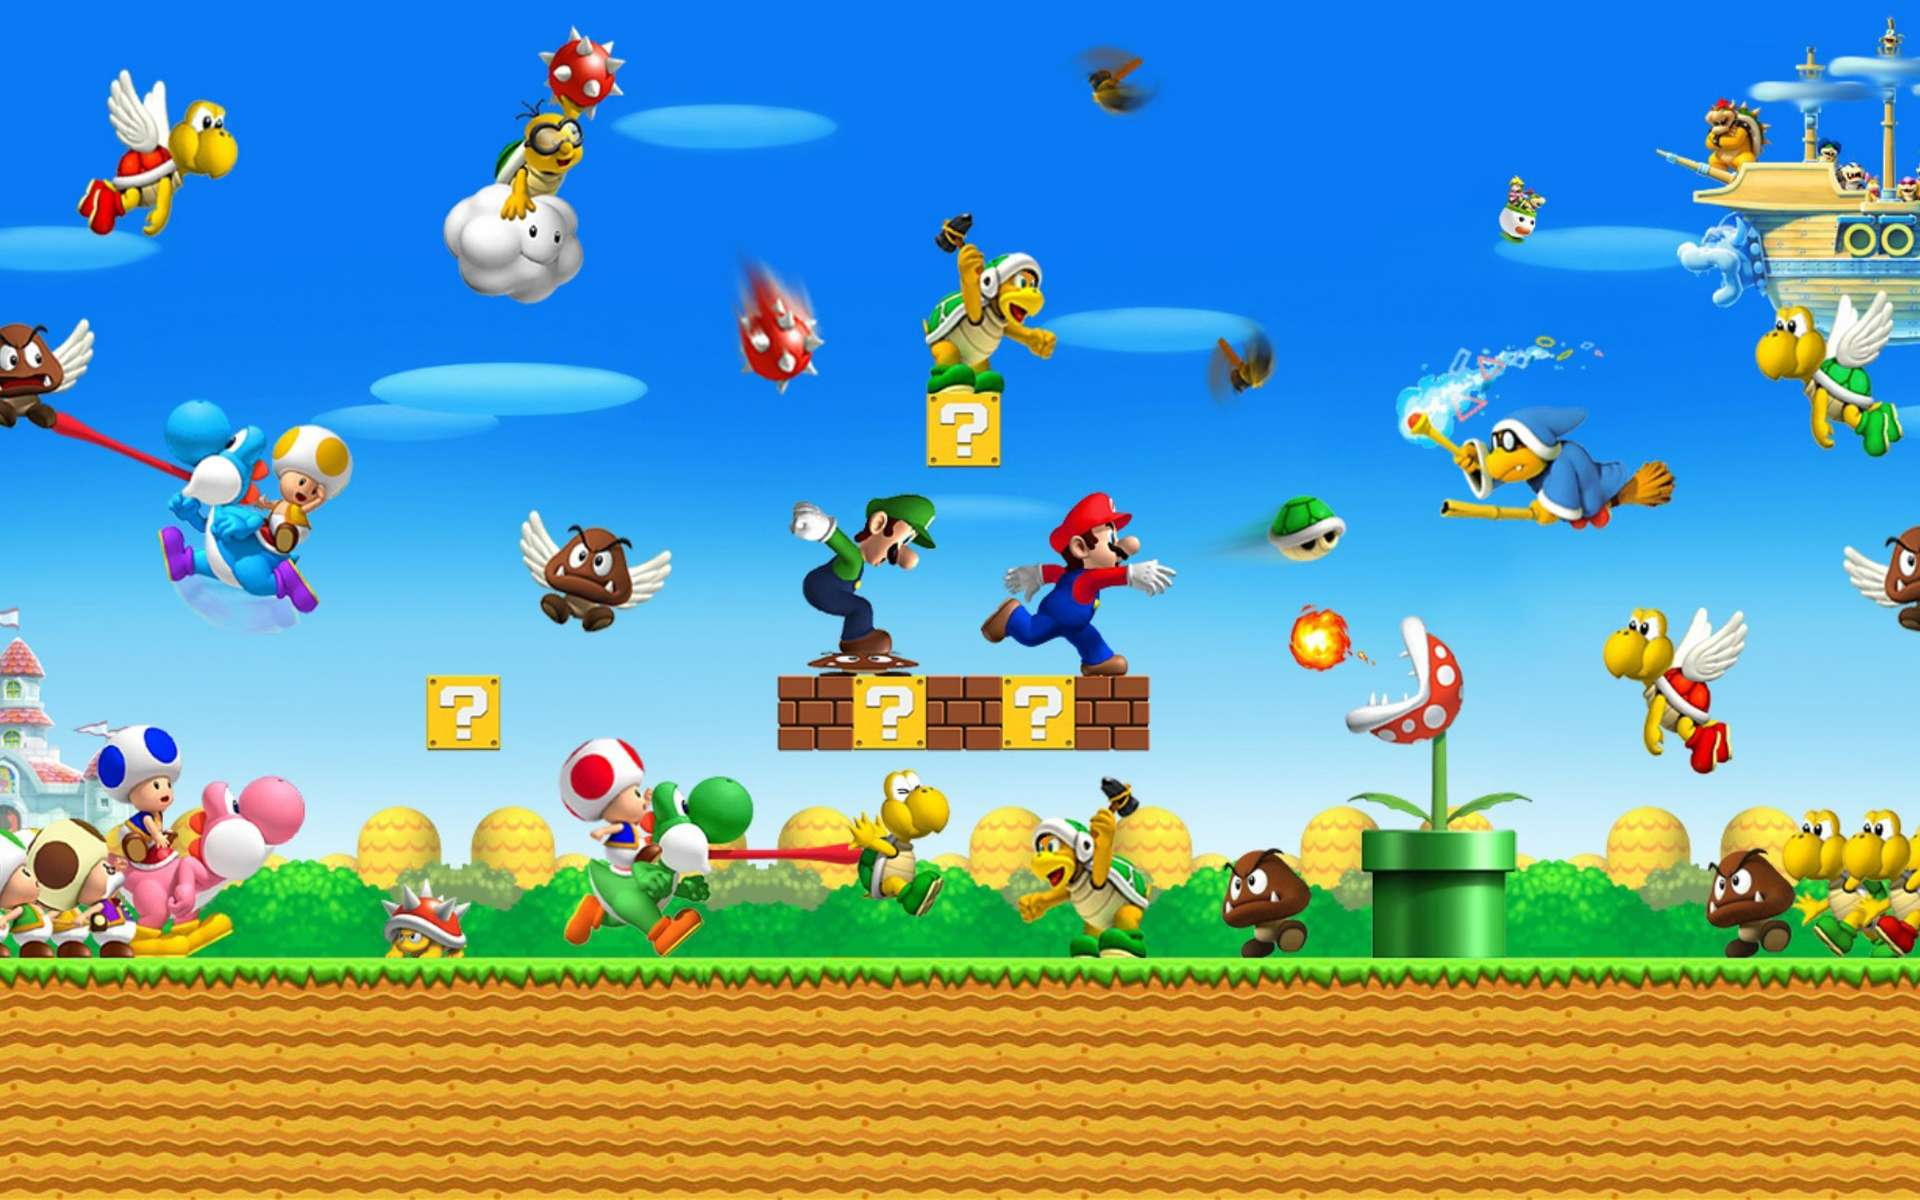 Mario Pc Wallpapers Top Free Mario Pc Backgrounds Wallpaperaccess